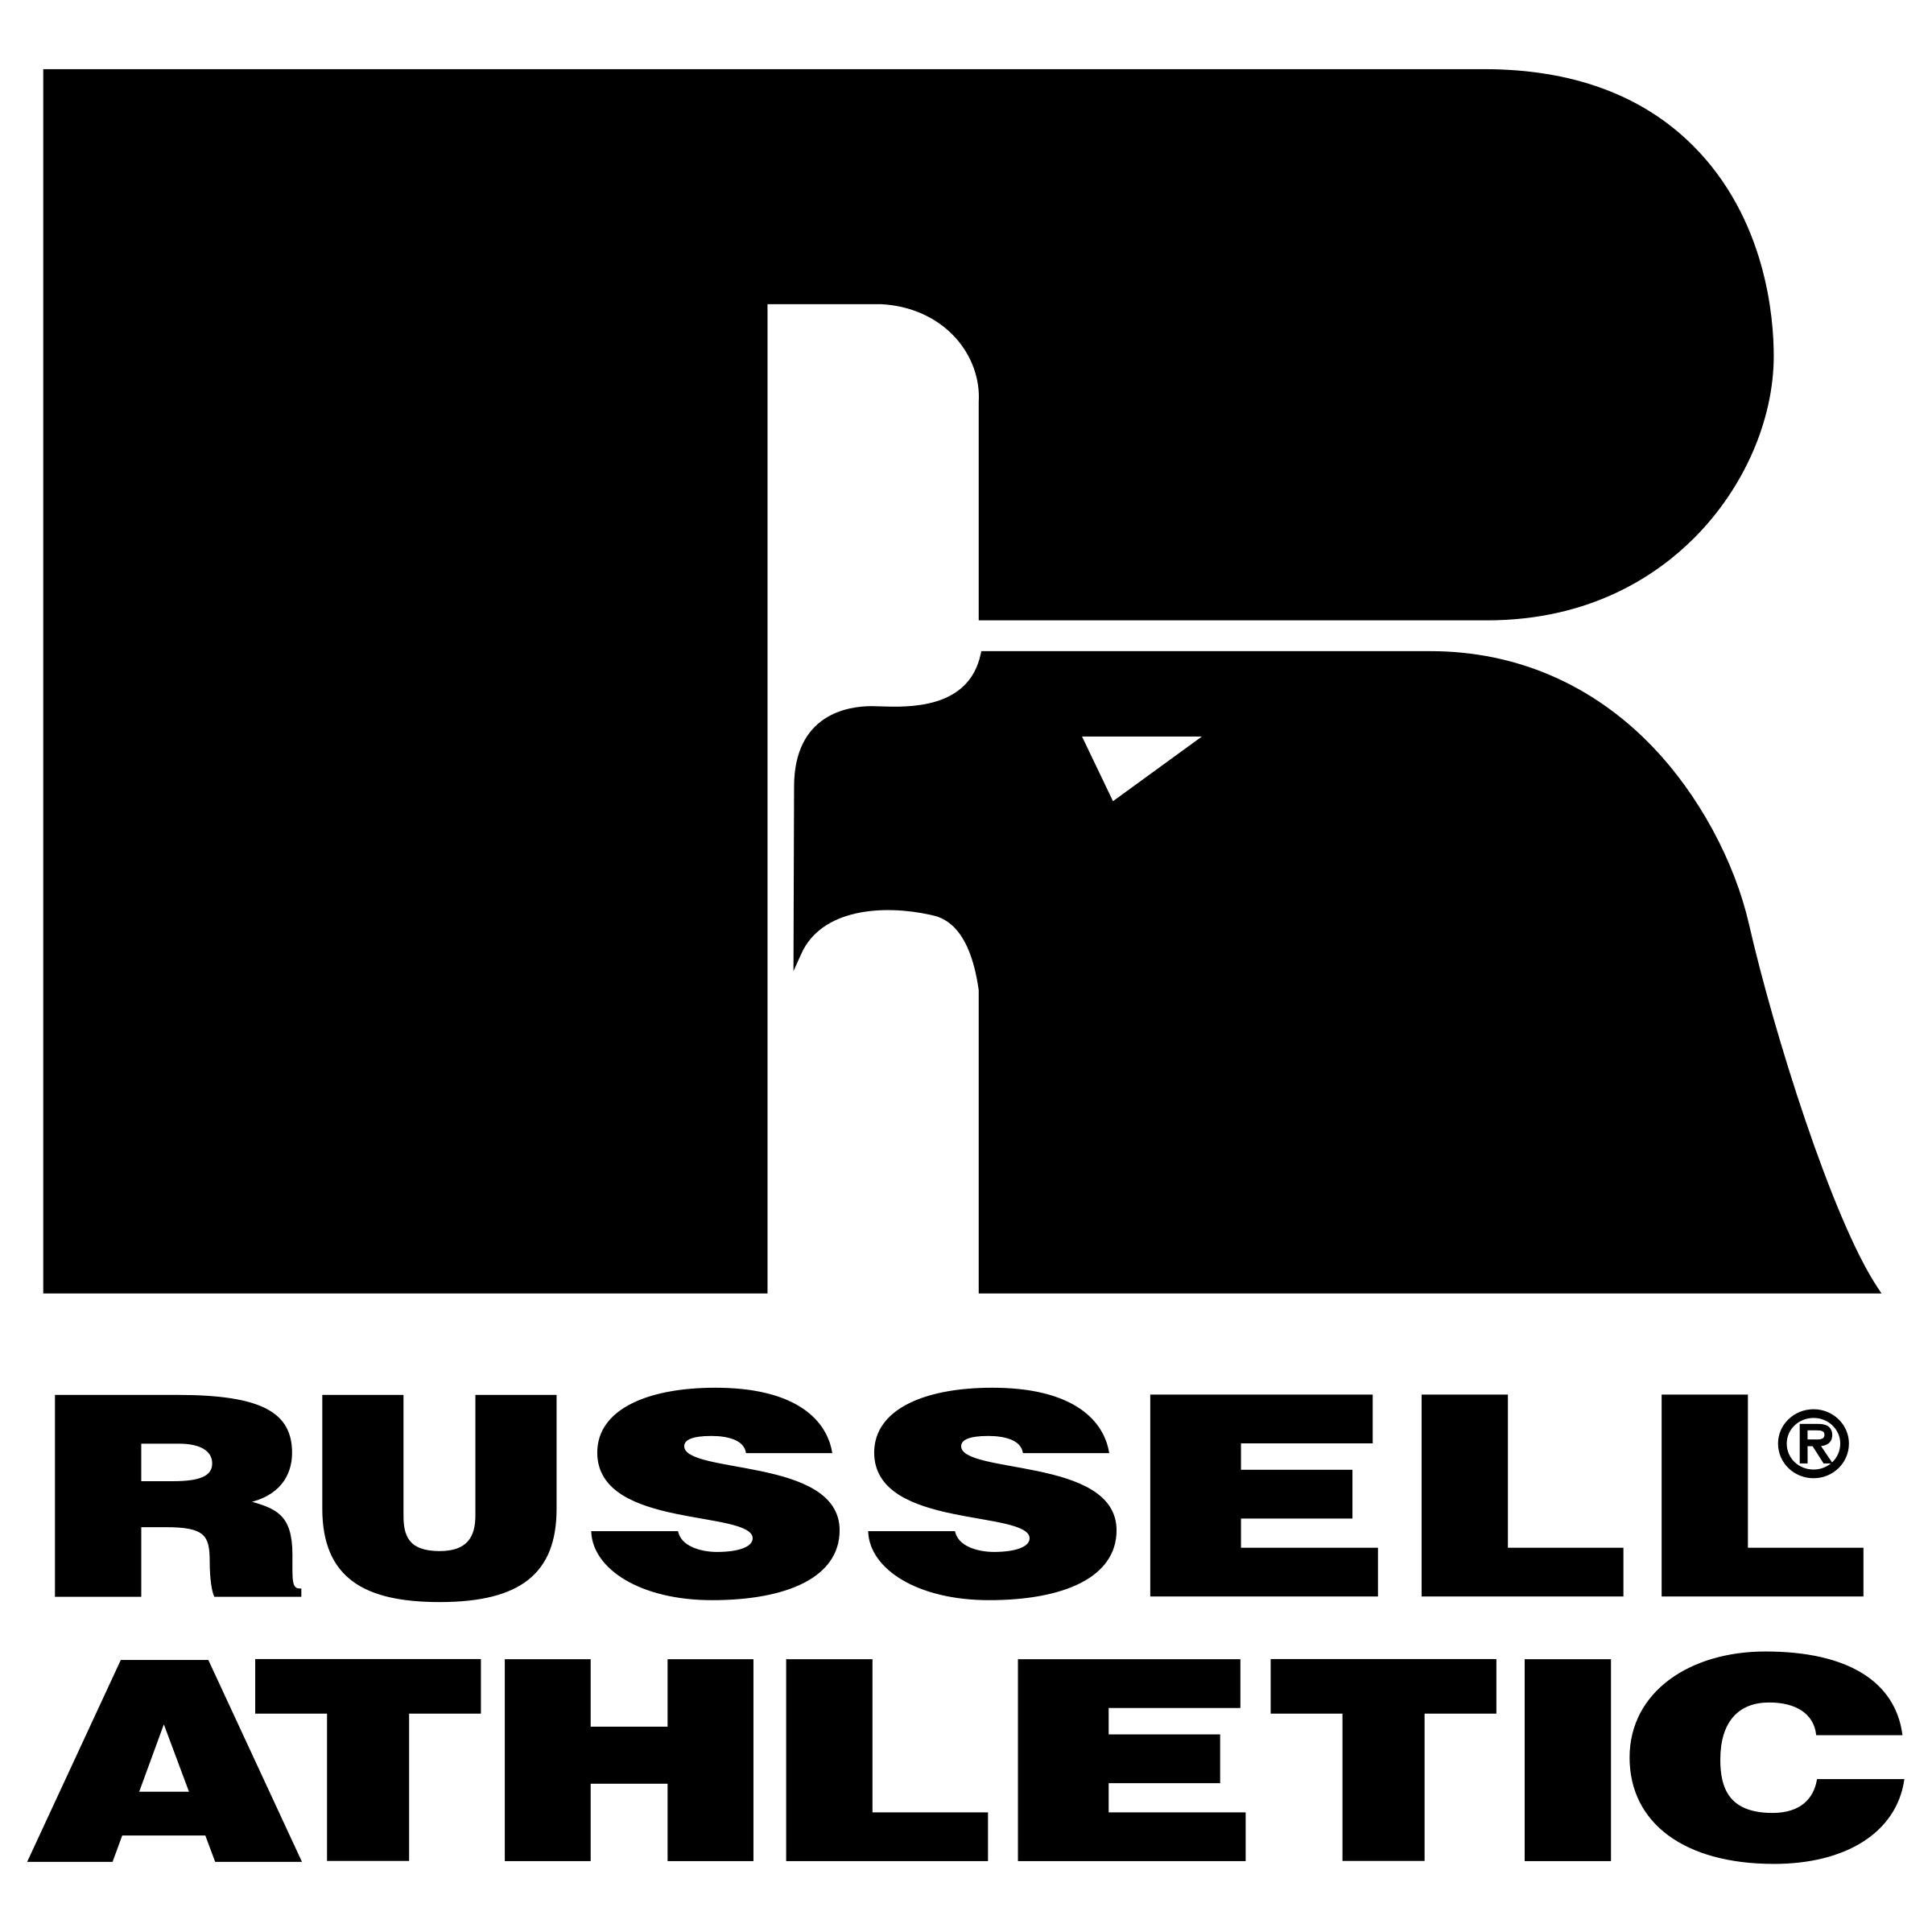 https://www.augmentcg.com/wp-content/uploads/2019/08/russell-athletic-2-logo-png-transparent.png